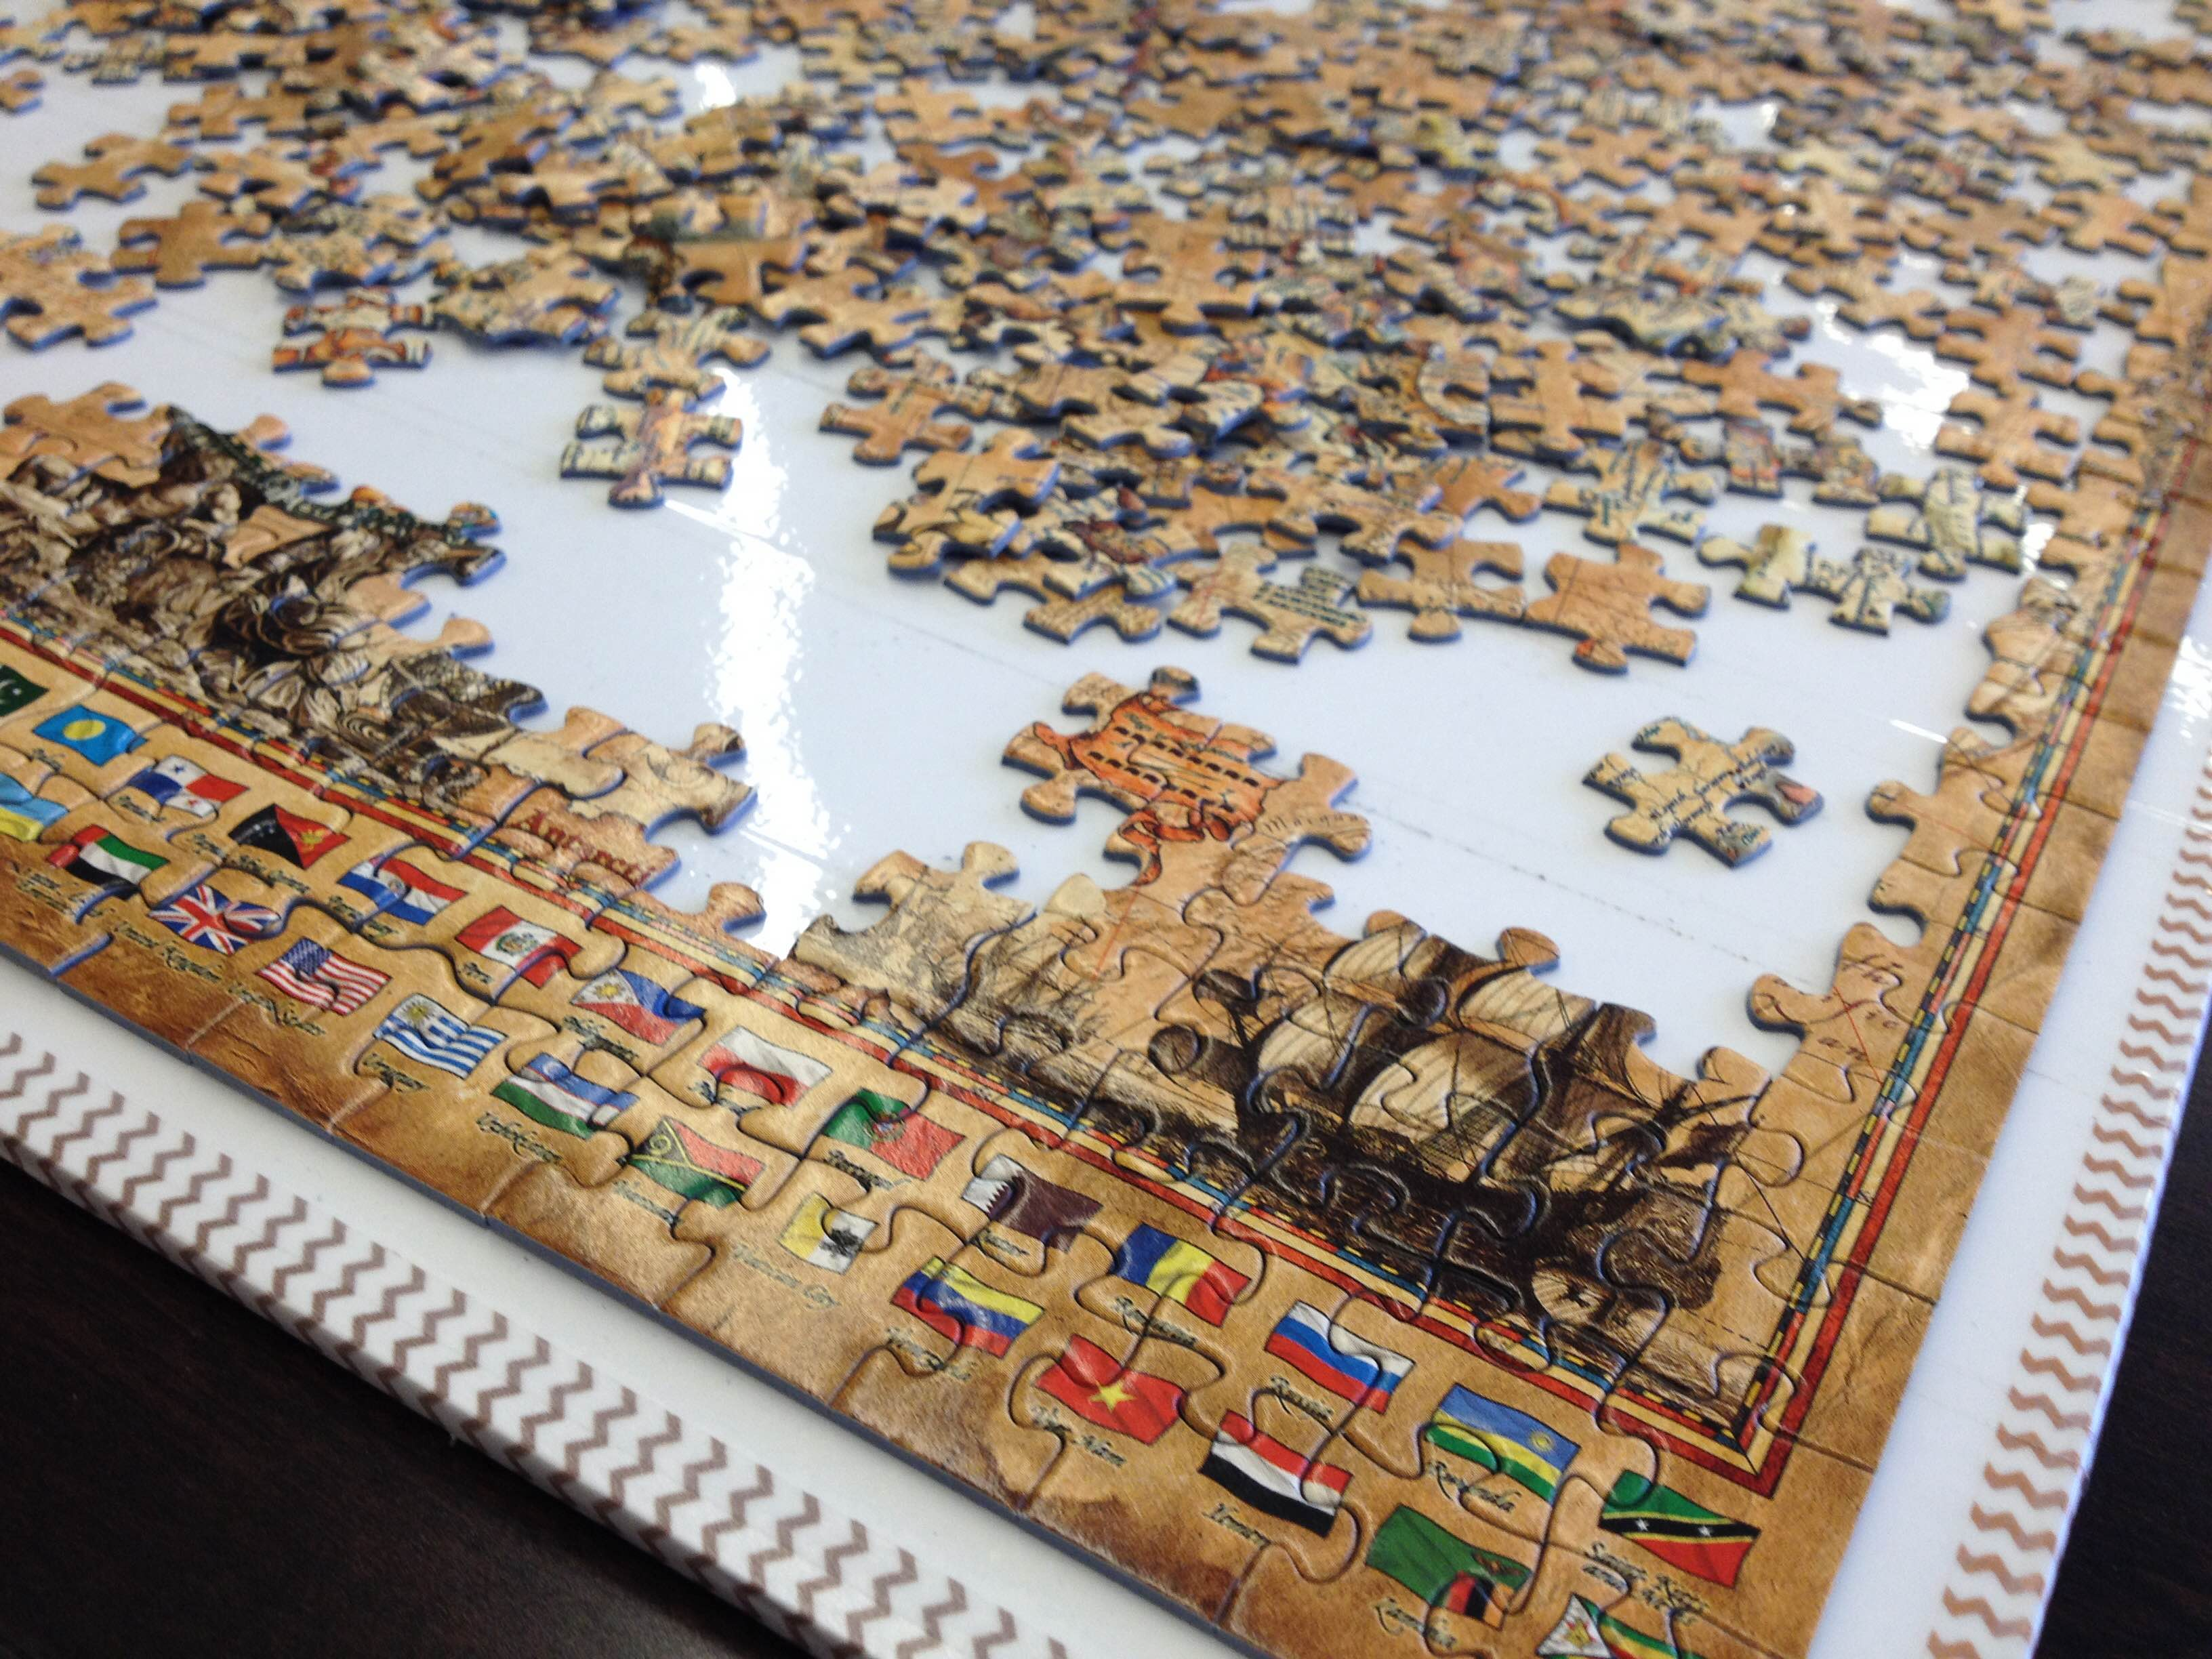 A photograph of a jigsaw puzzle